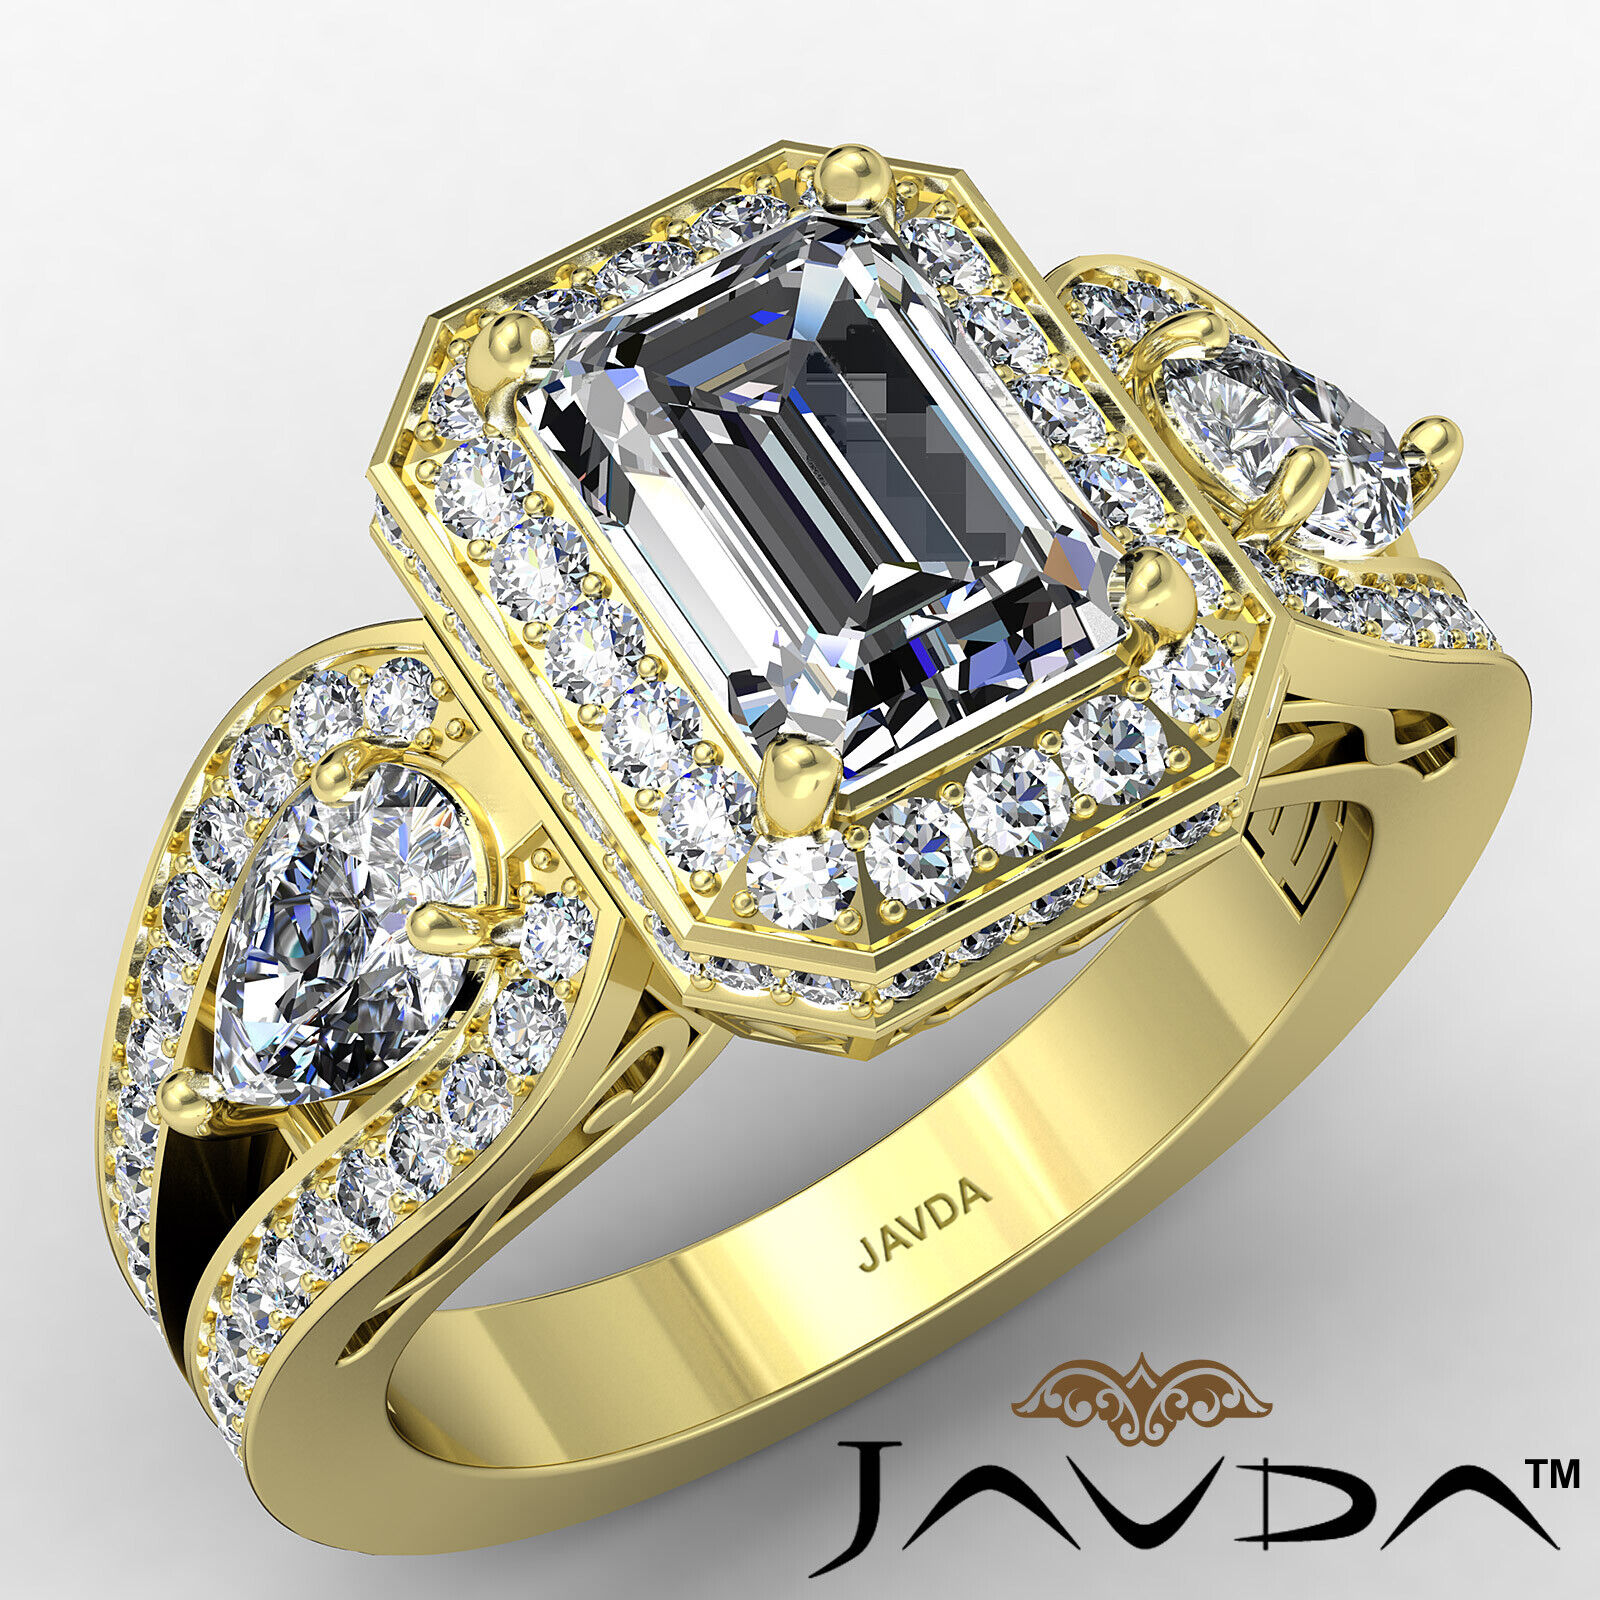 Halo Emerald Diamond Engagement Ring GIA Certified J Color & VS2 clarity 2.85ctw 1